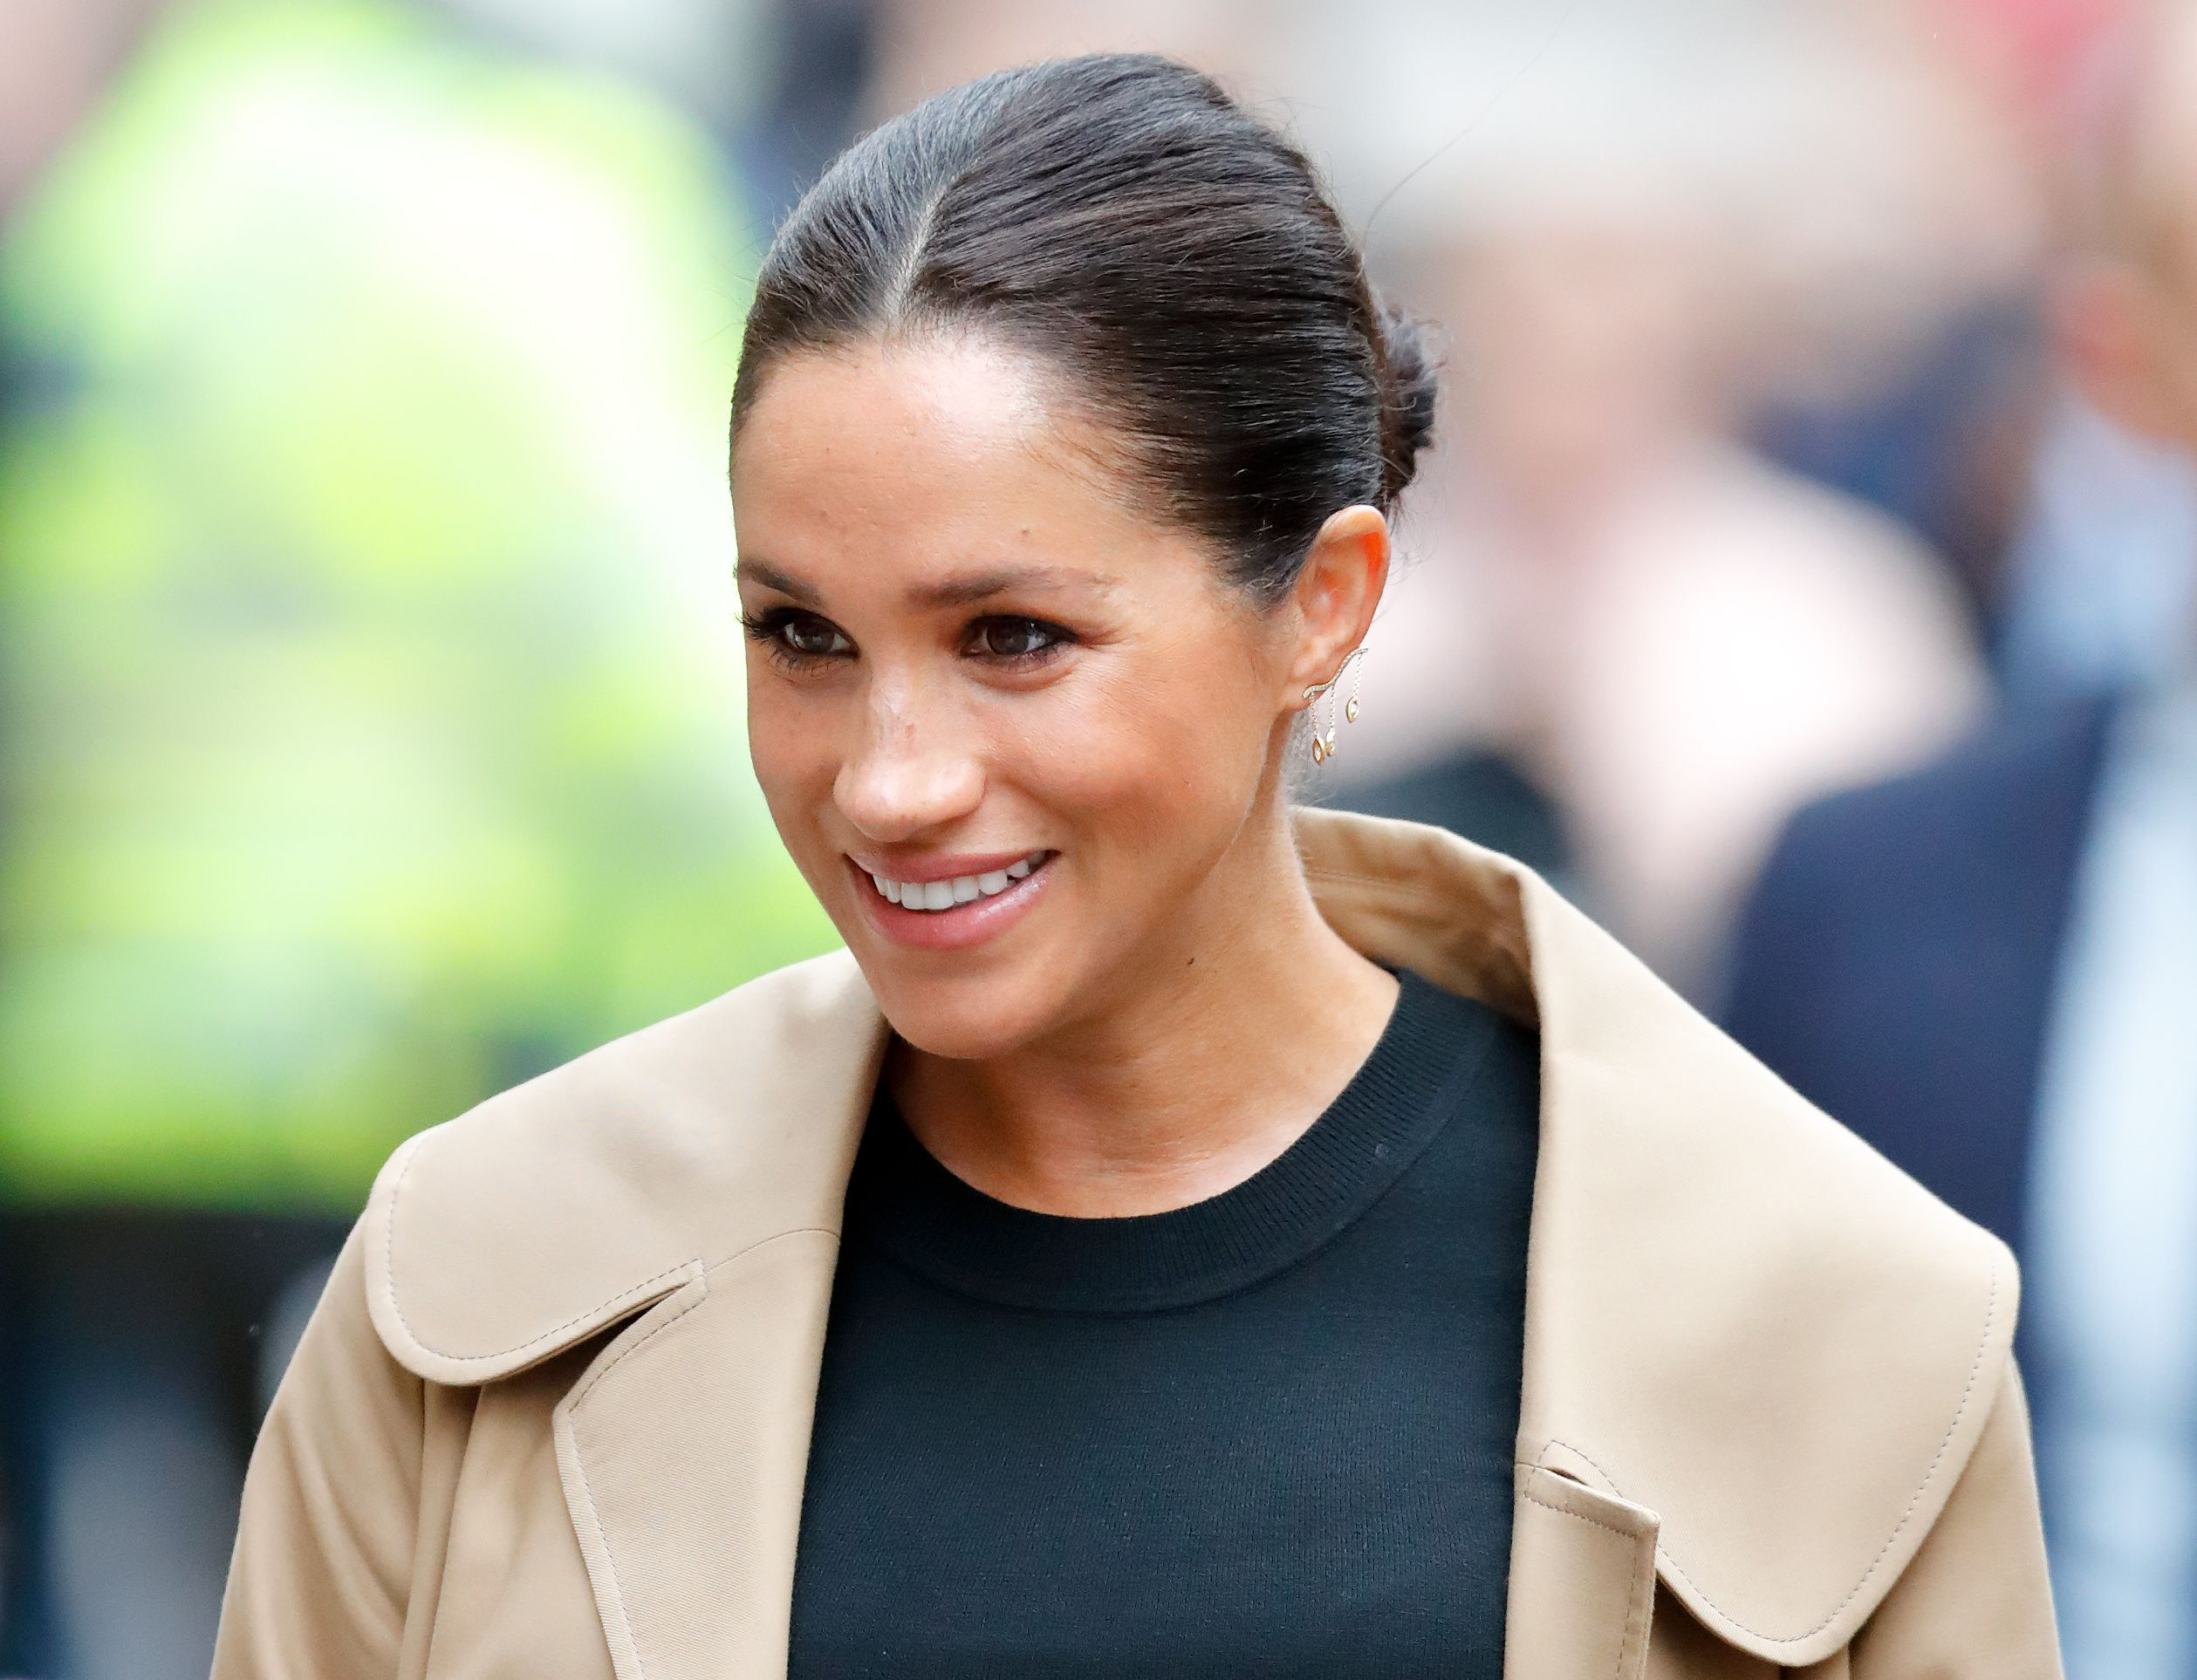 You Can Now Shop Meghan Markle's Favorite Maternity Line at Nordstrom